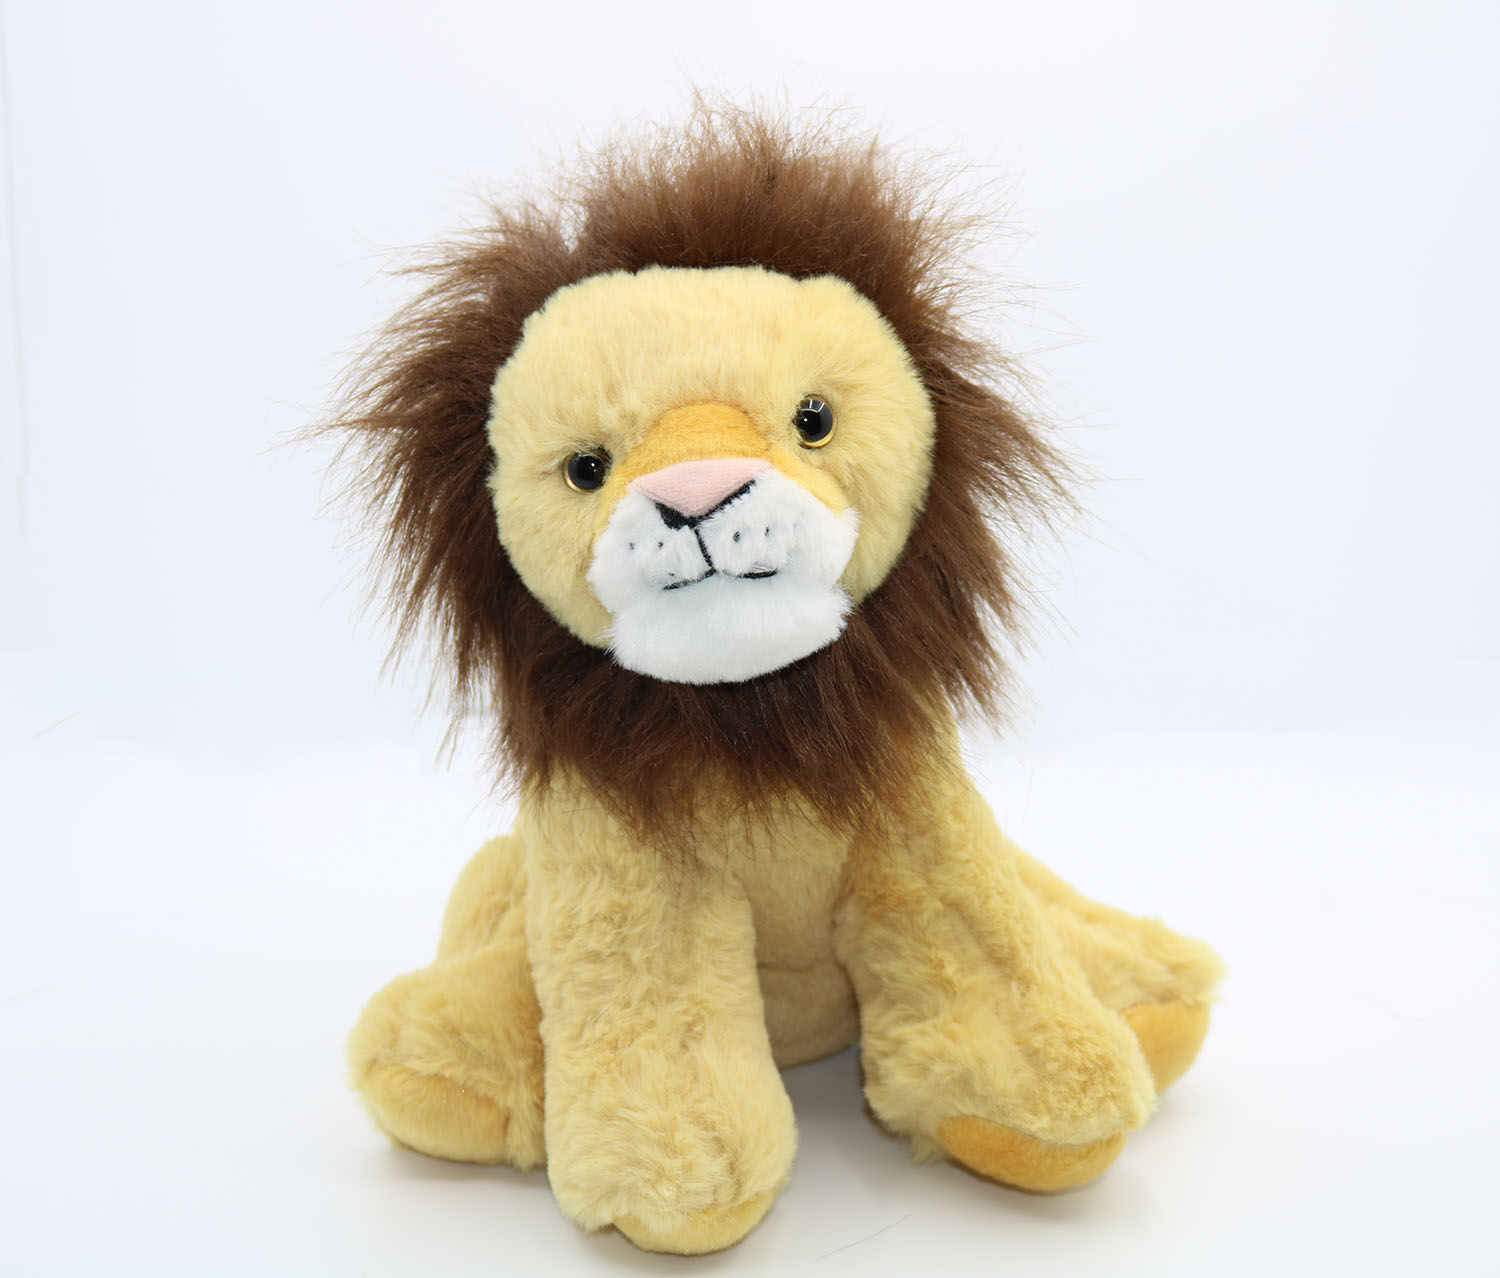 Plush Toy-Lion, Tan/Brown